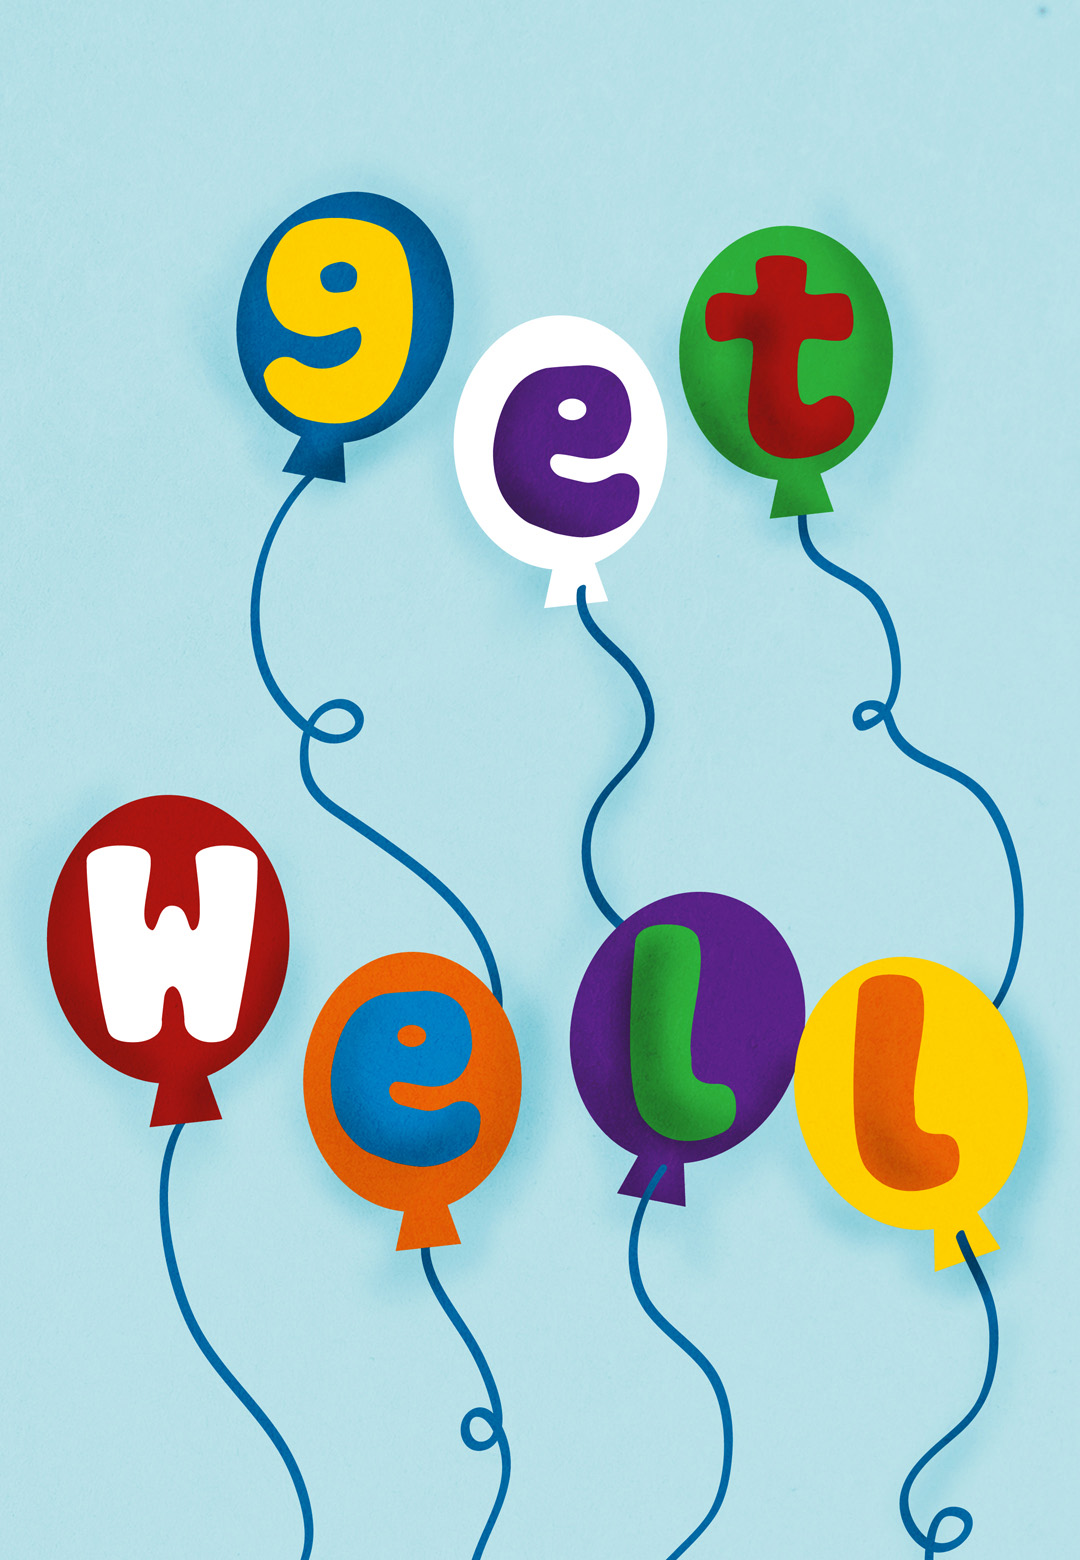 image regarding Printable Get Well Cards referred to as 24 Calming Printable Take Very well Playing cards